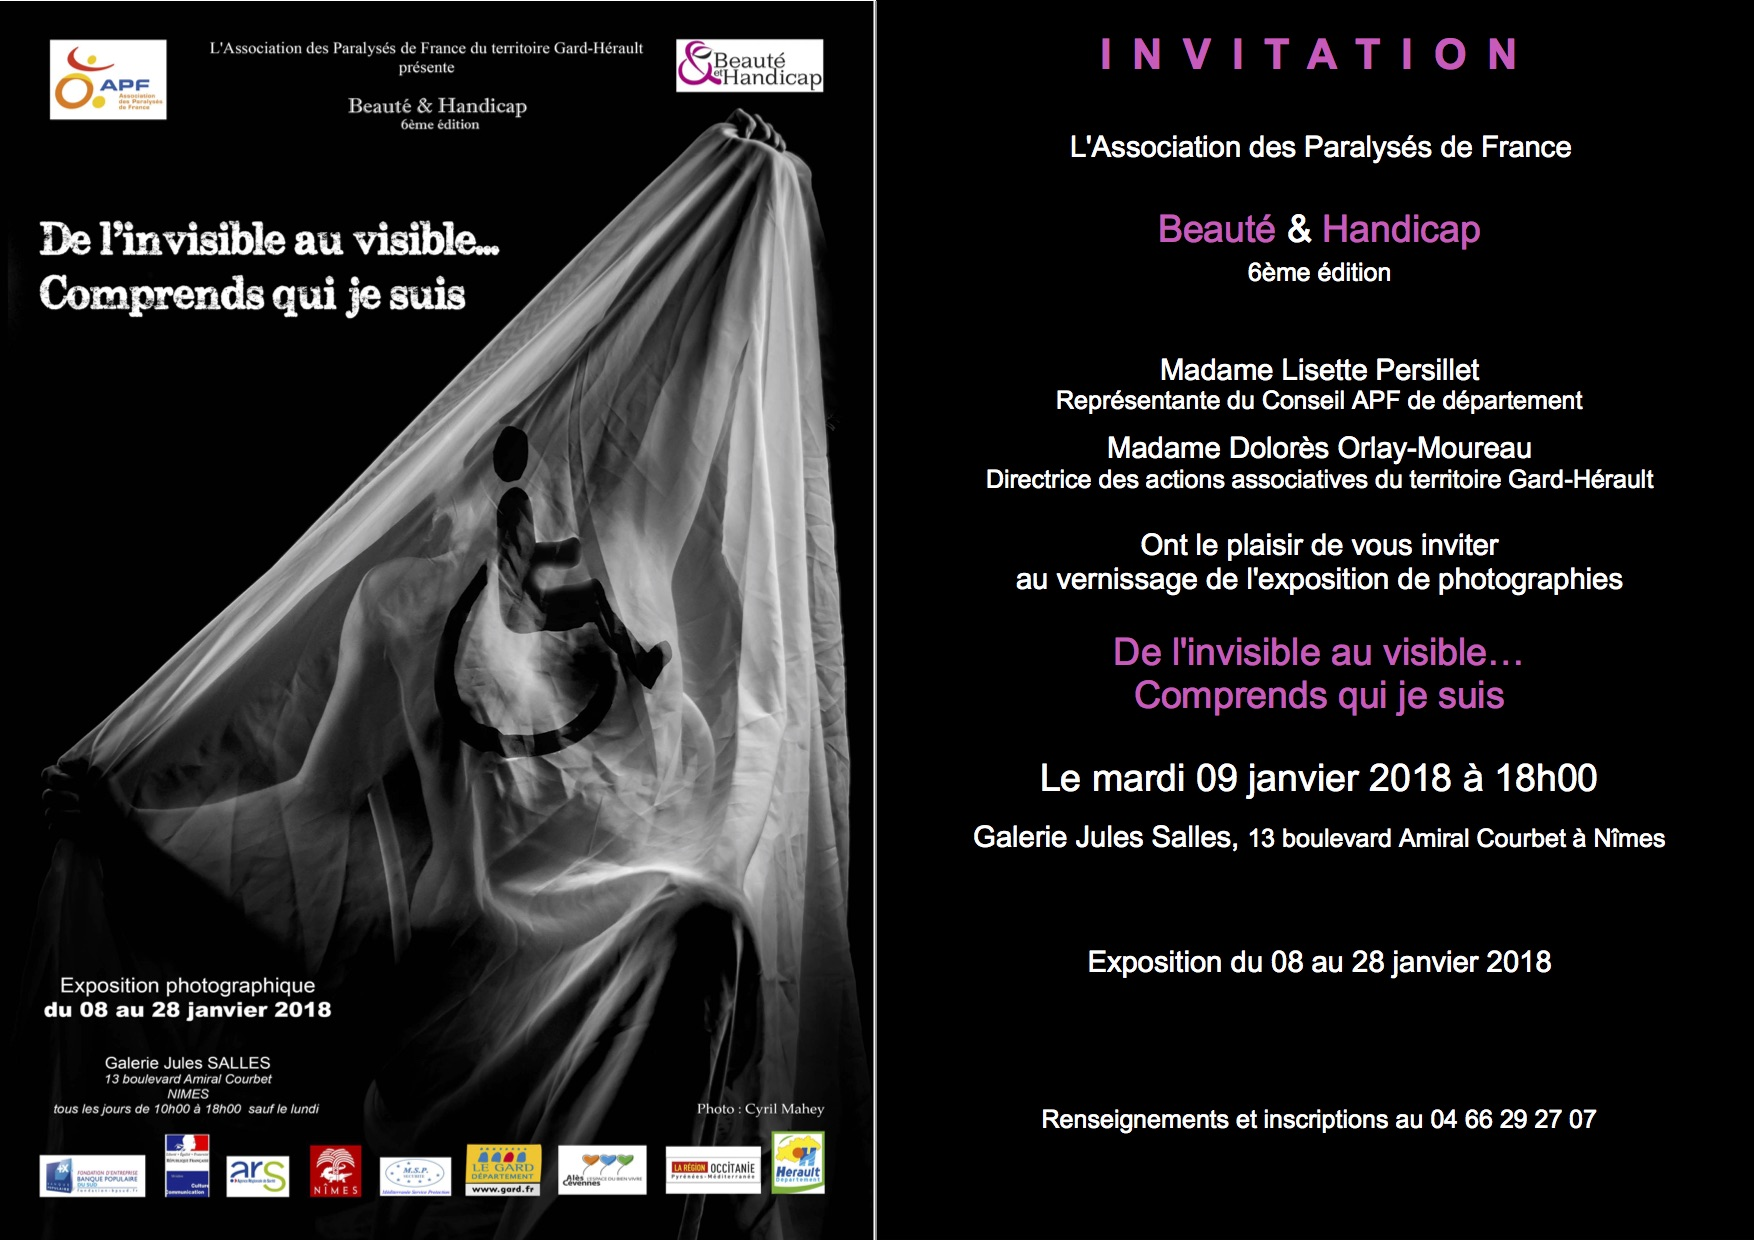 Invitation%20APF%20du%20Gard%20exposition%20photos.jpg